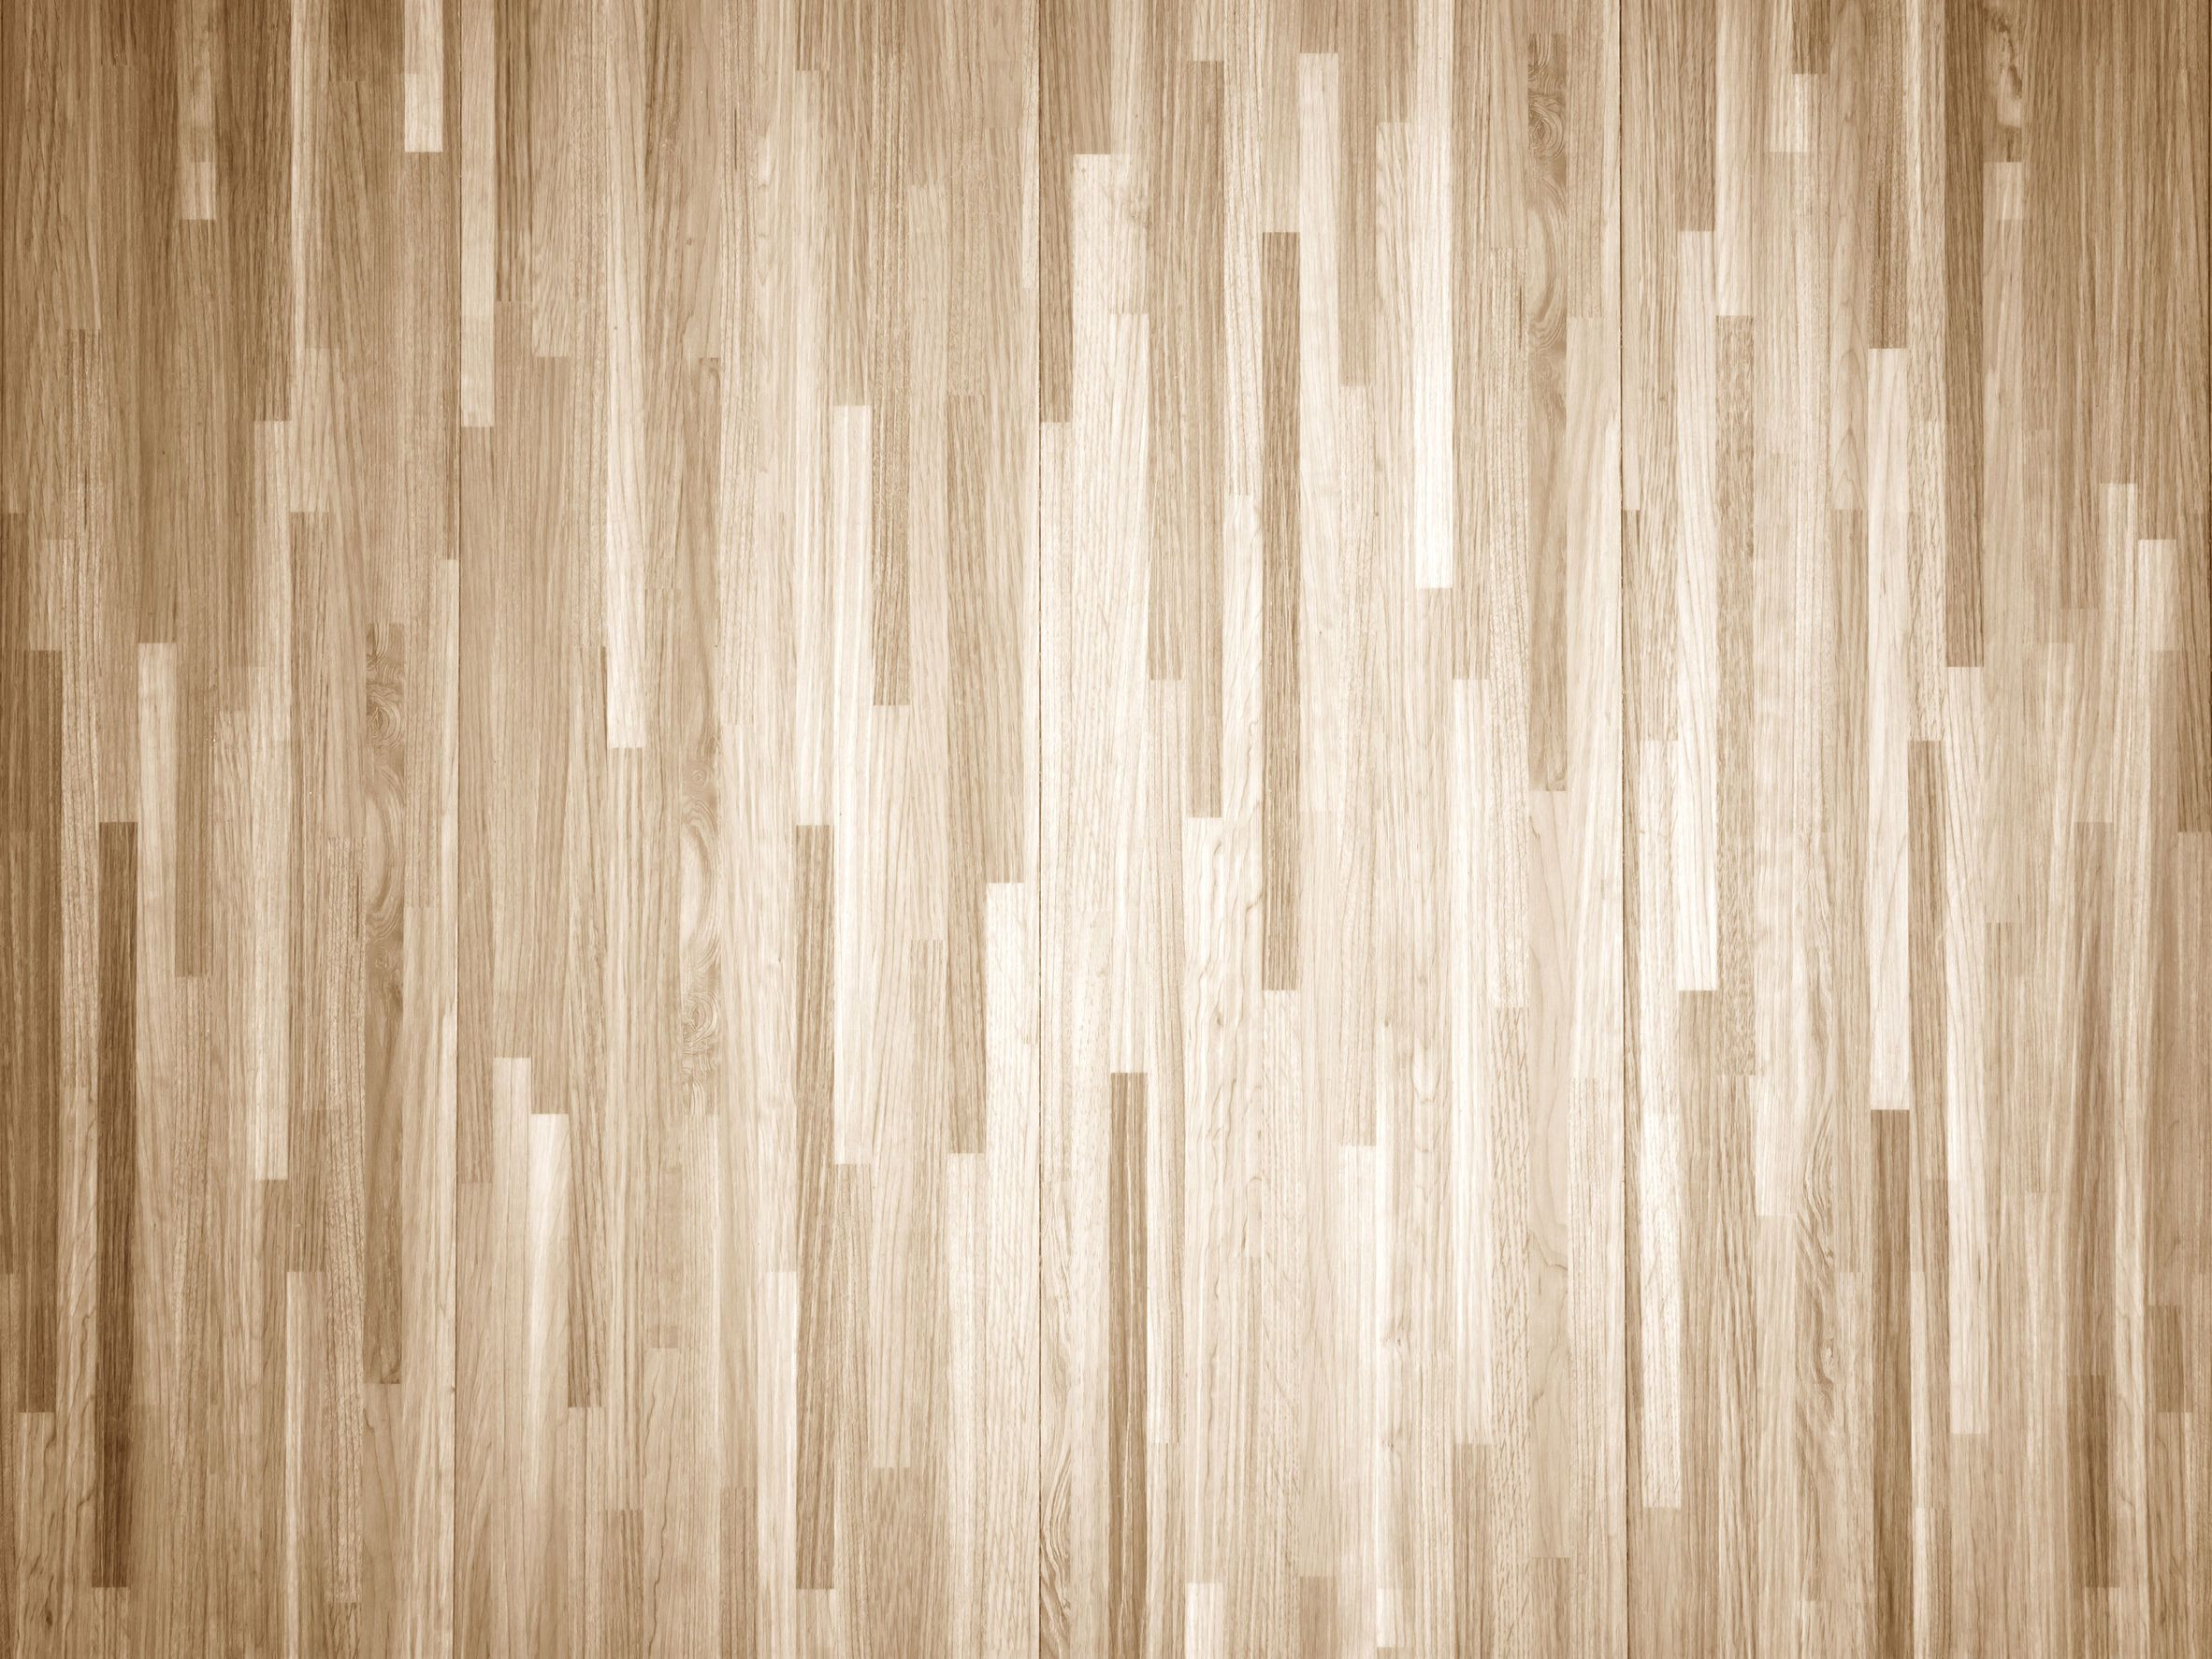 hardwood floors diy or professional of how to chemically strip wood floors woodfloordoctor com intended for you